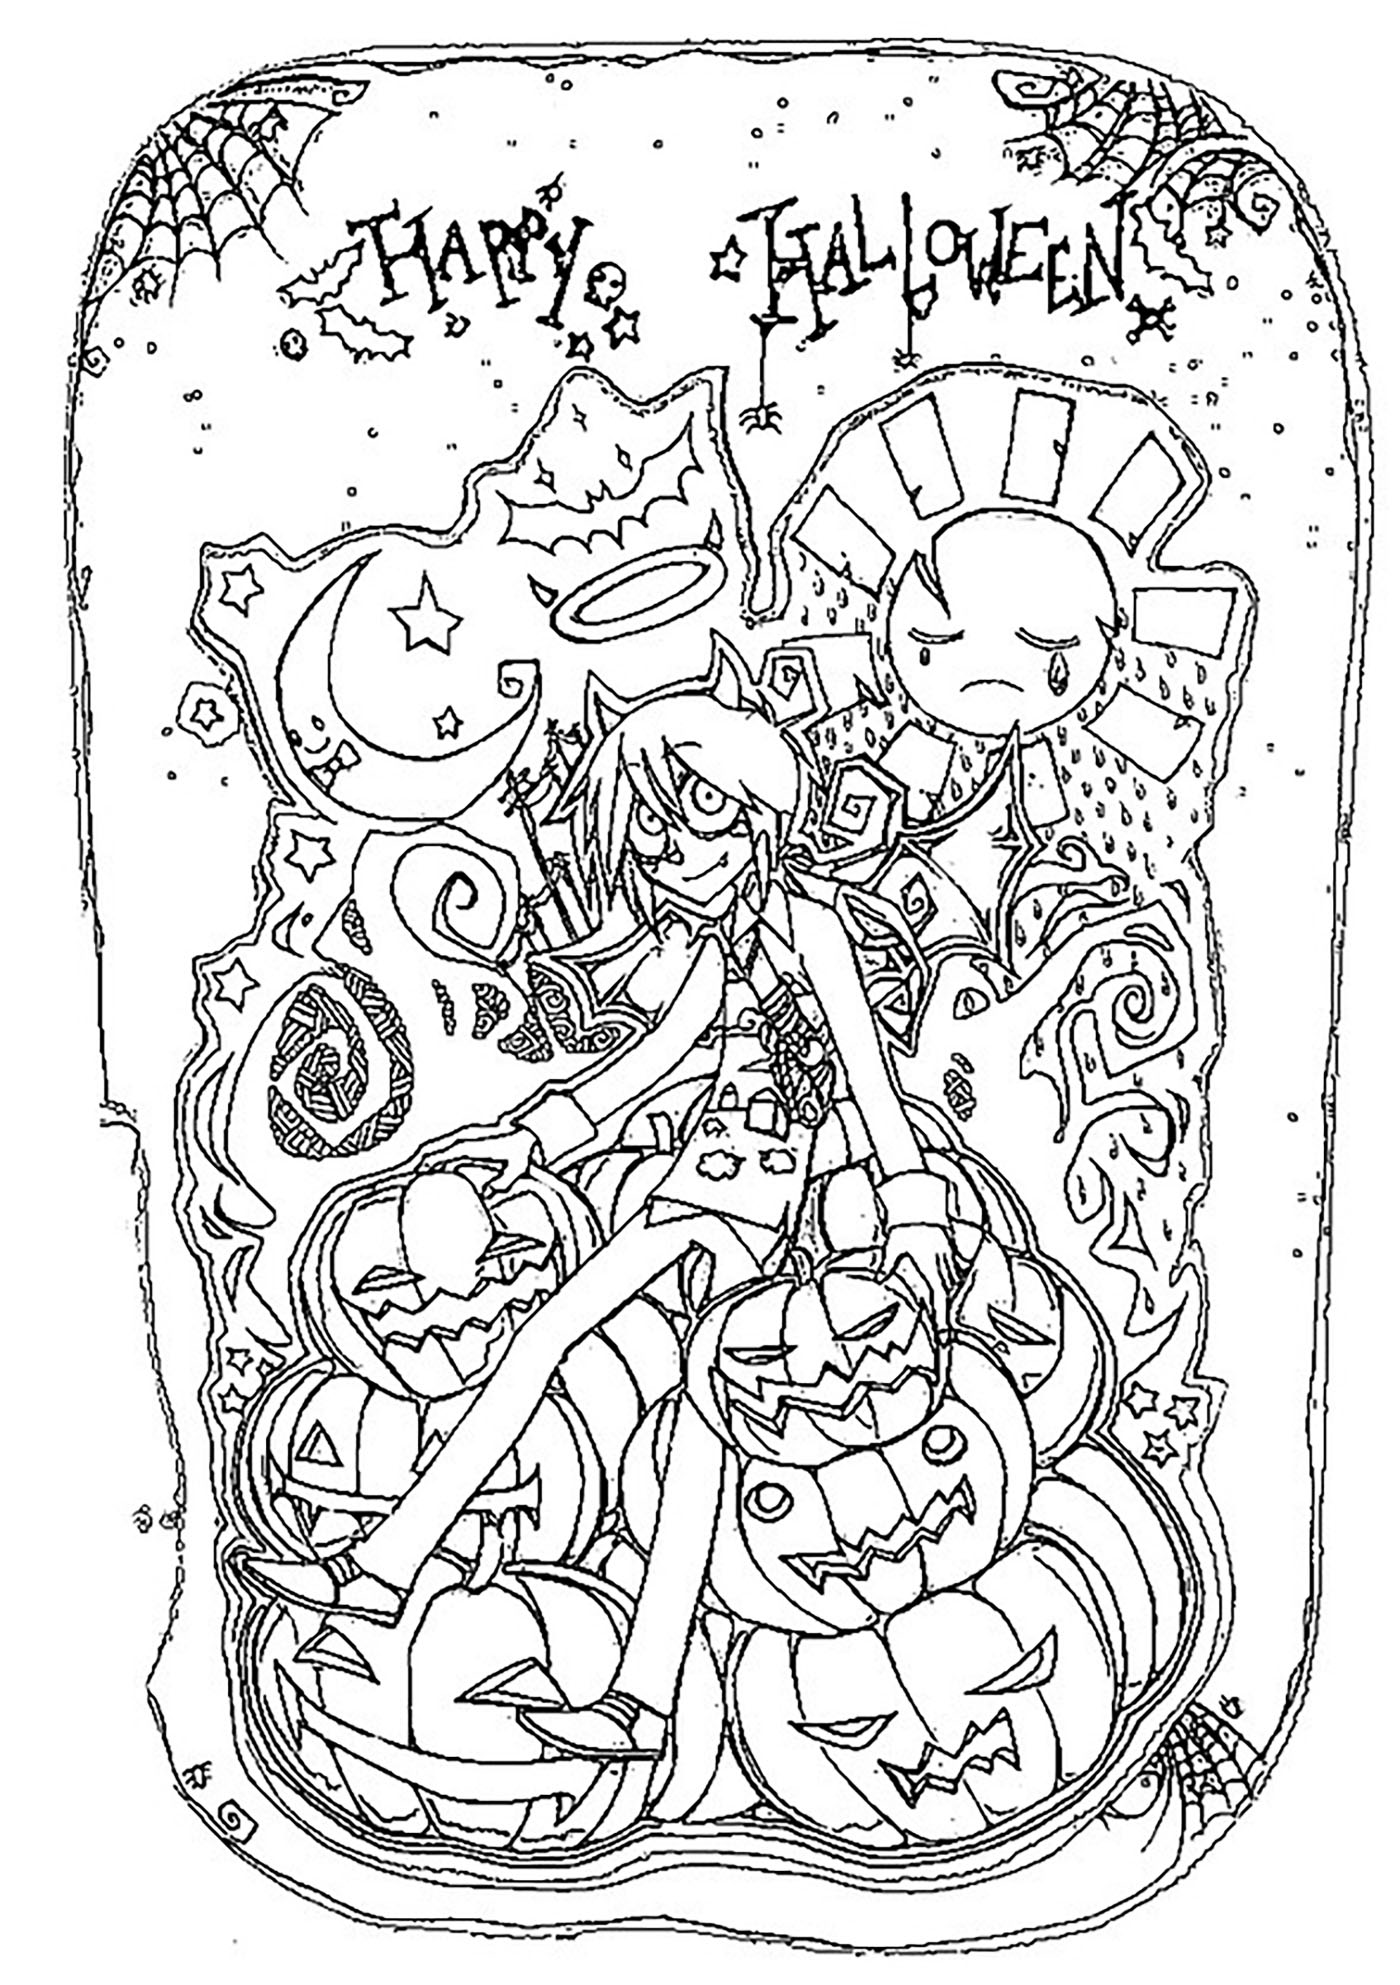 coloring halloween doodle pages halloween happy halloween halloween adult coloring pages coloring halloween pages doodle